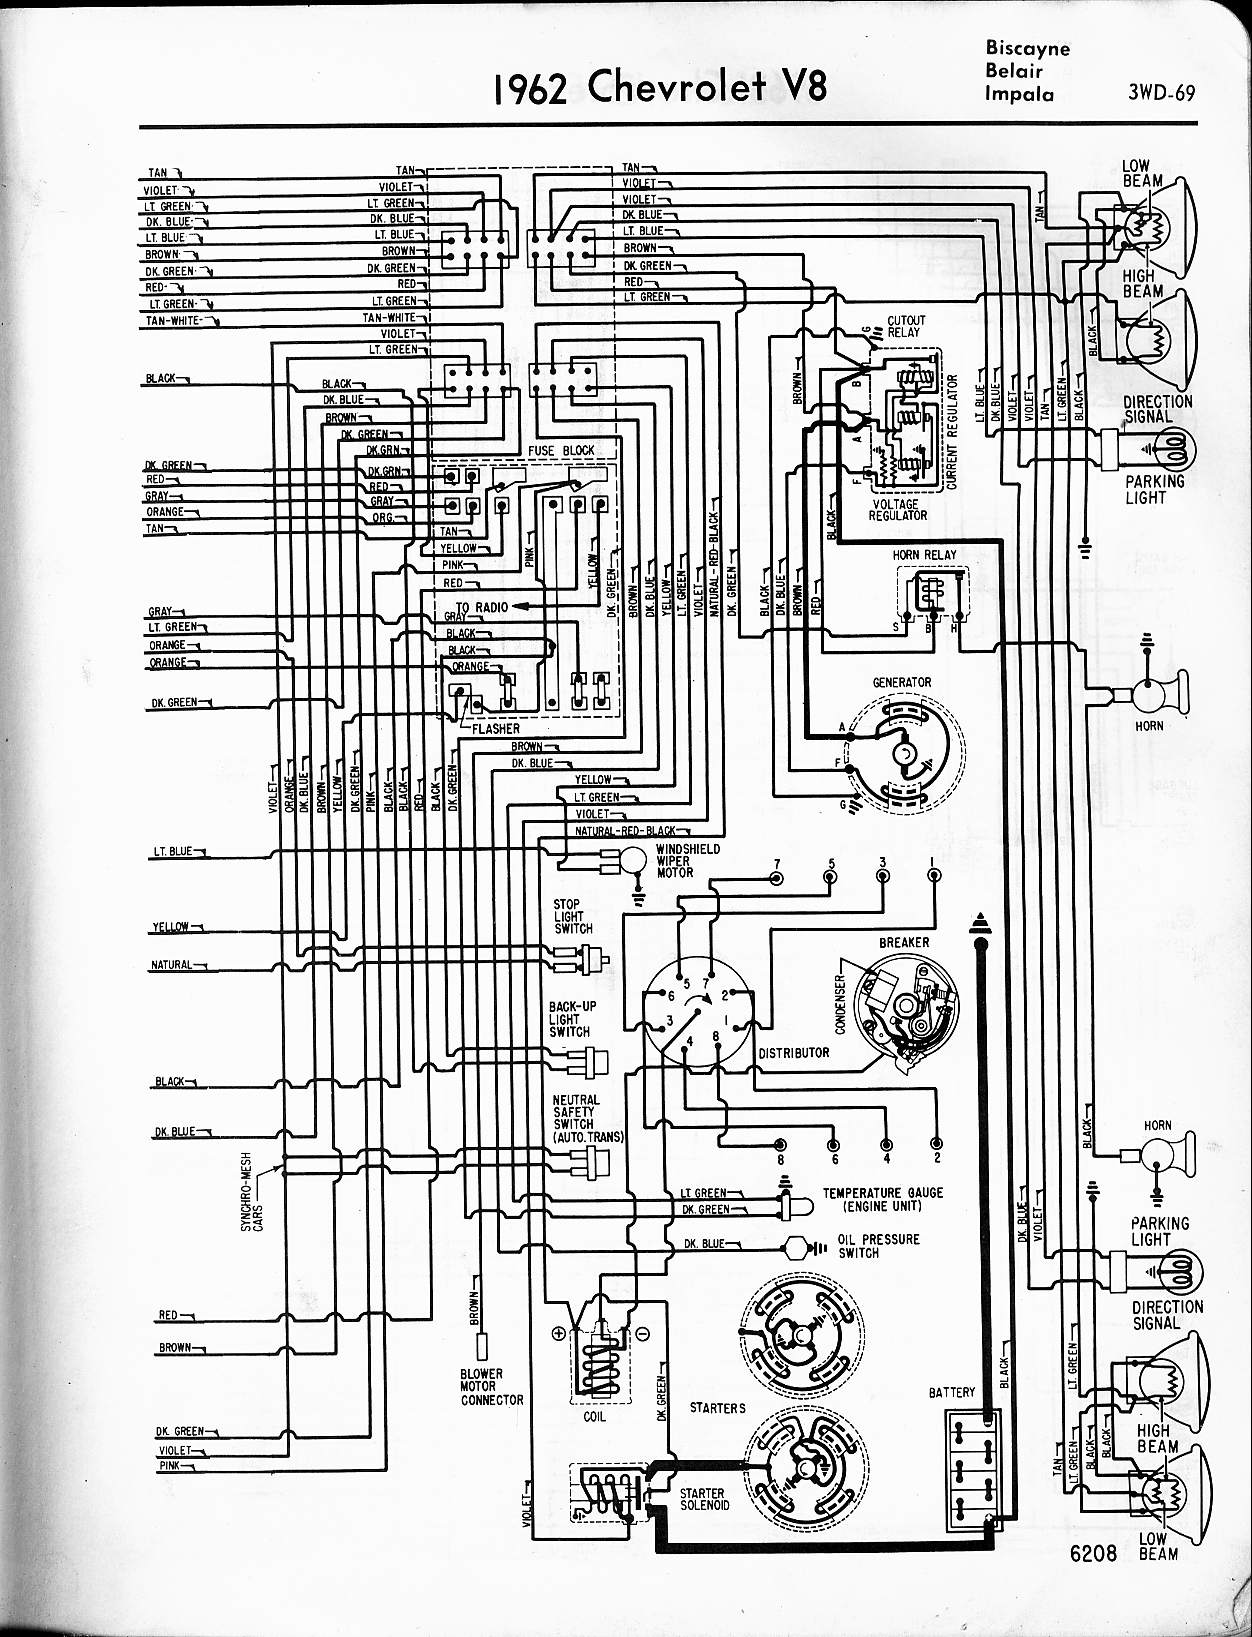 57 65 chevy wiring diagrams rh oldcarmanualproject com 65 chevy impala  wiring diagram 1965 chevrolet impala wiring diagram